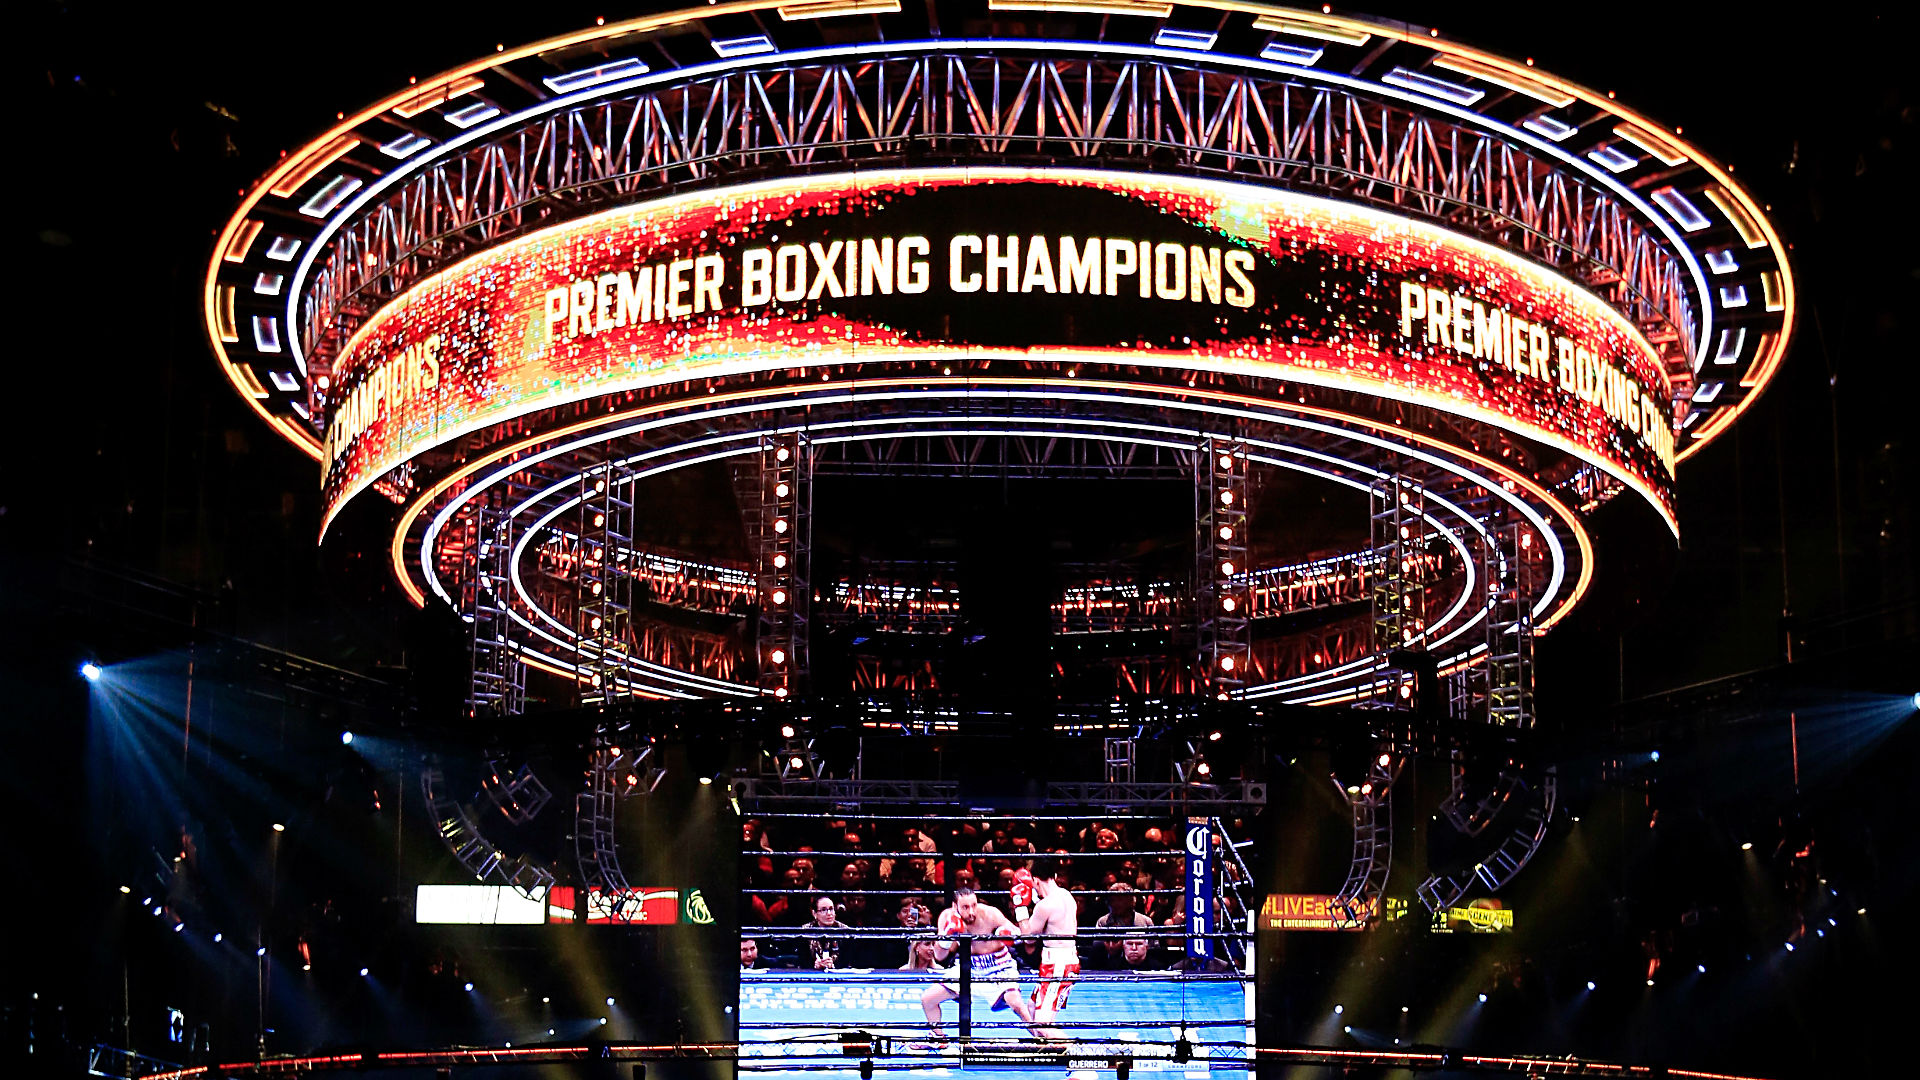 premier-boxing-champions-465554072-GETTY-FTR.jpg